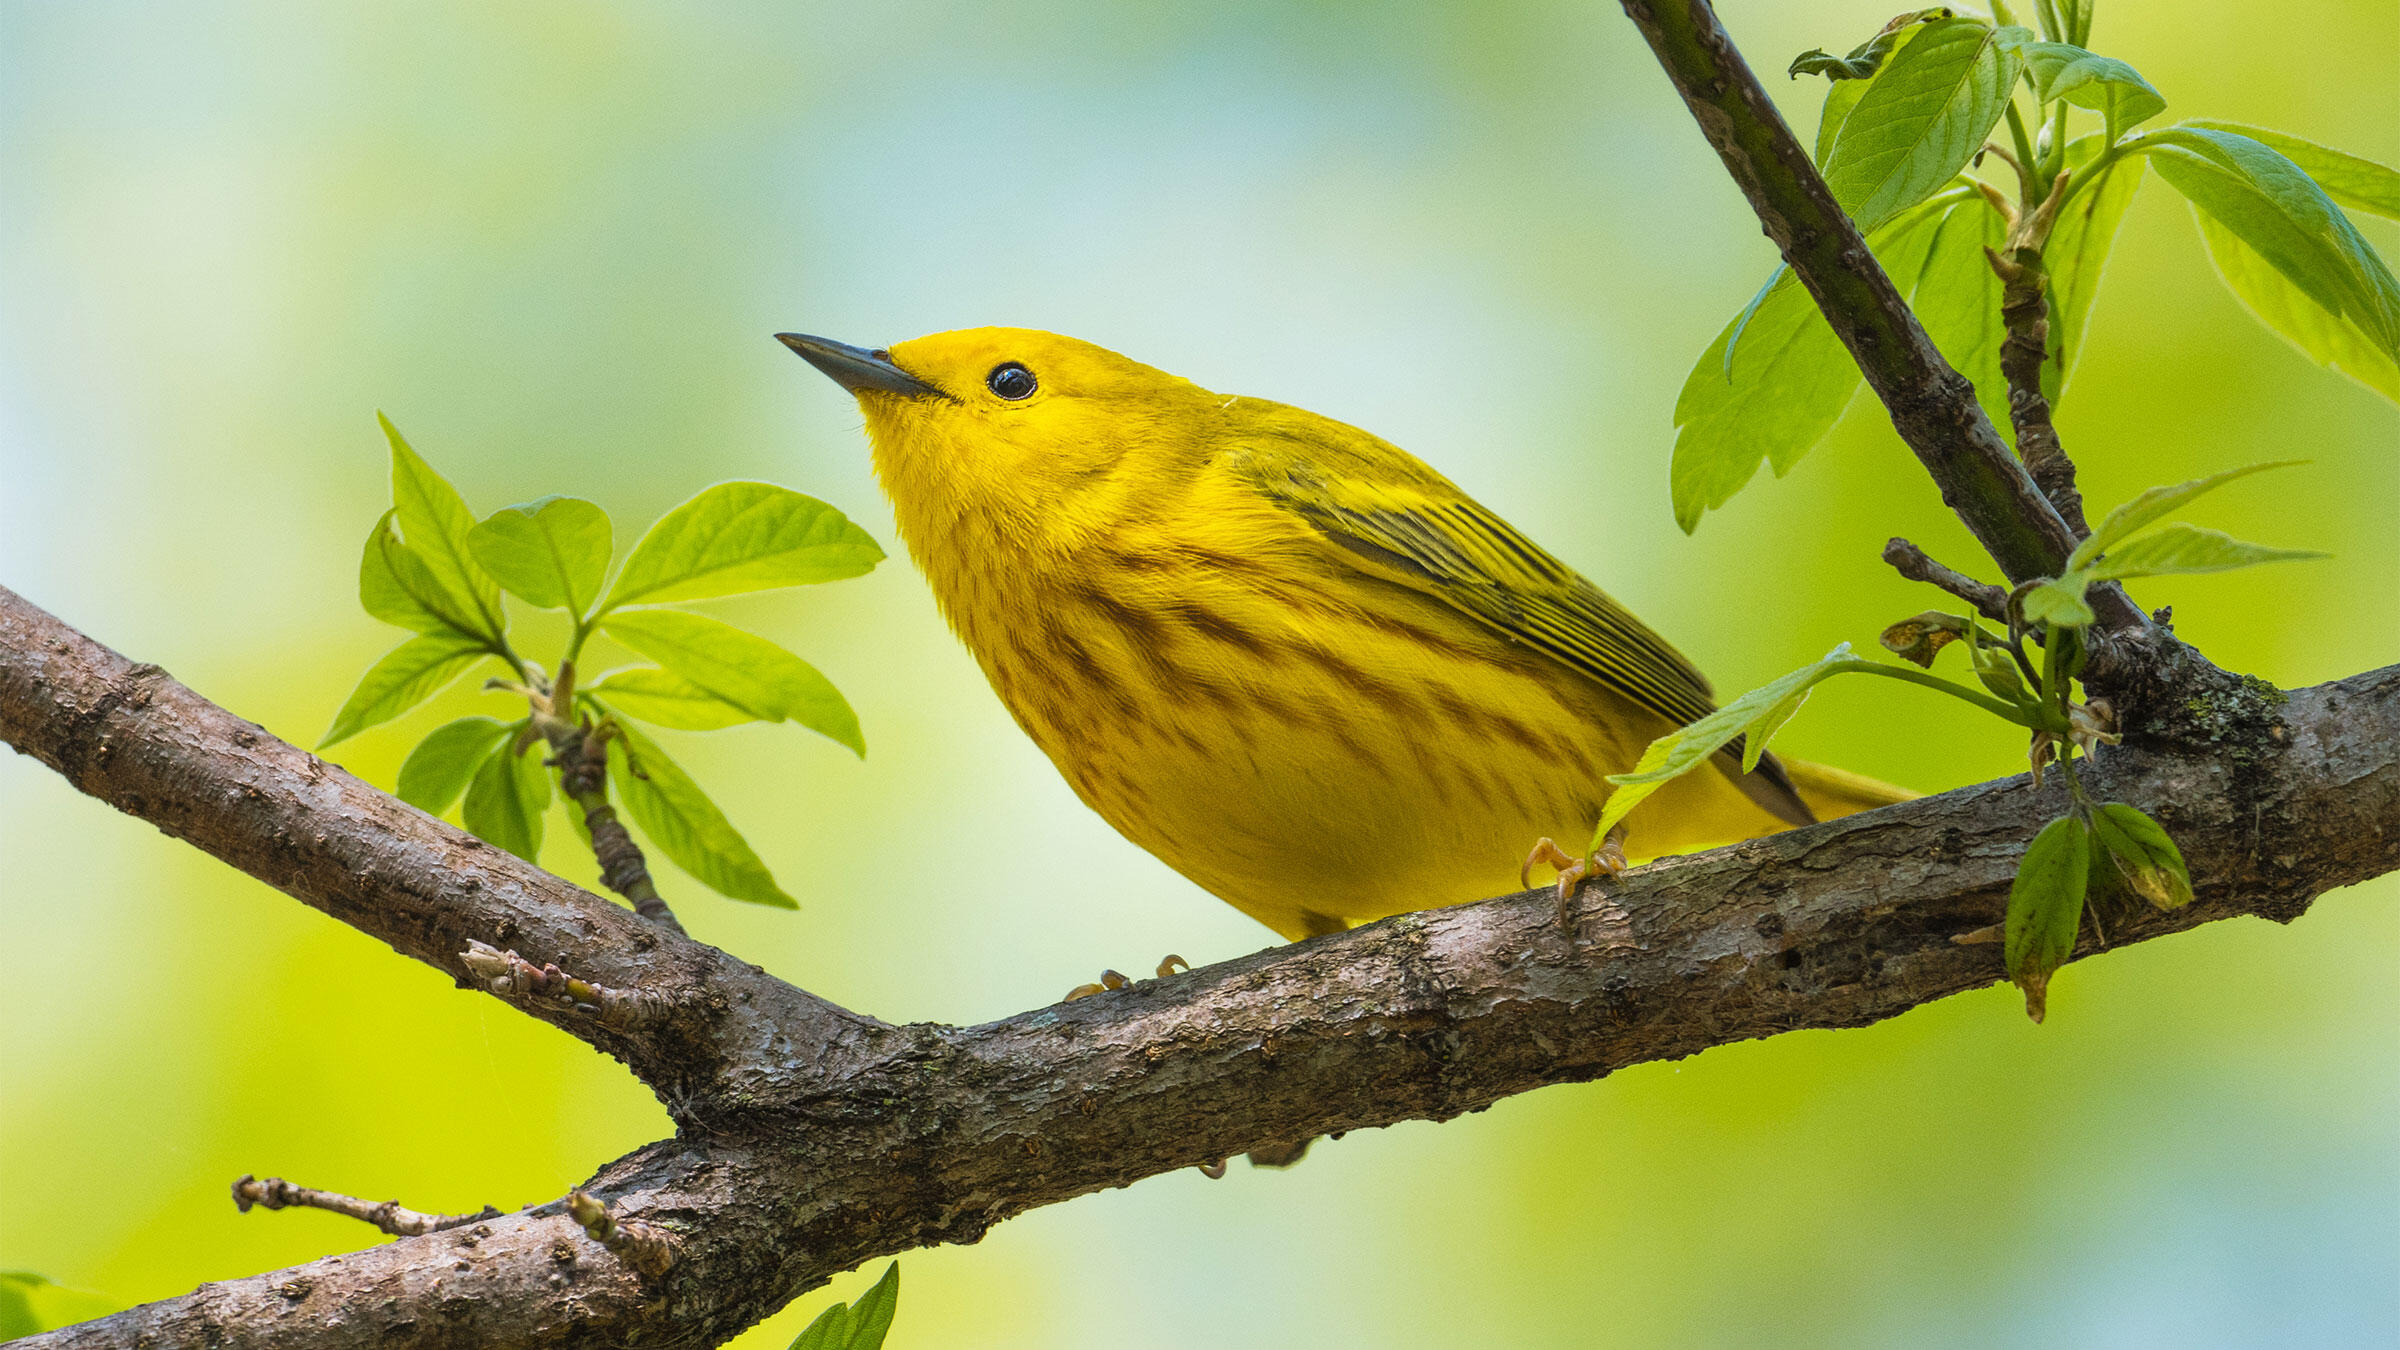 There are many yellow warblers, but Yellow Warblers are one of the most common and unmistakable with their spring plumage and song. Sheen Watkins/Audubon Photography Awards